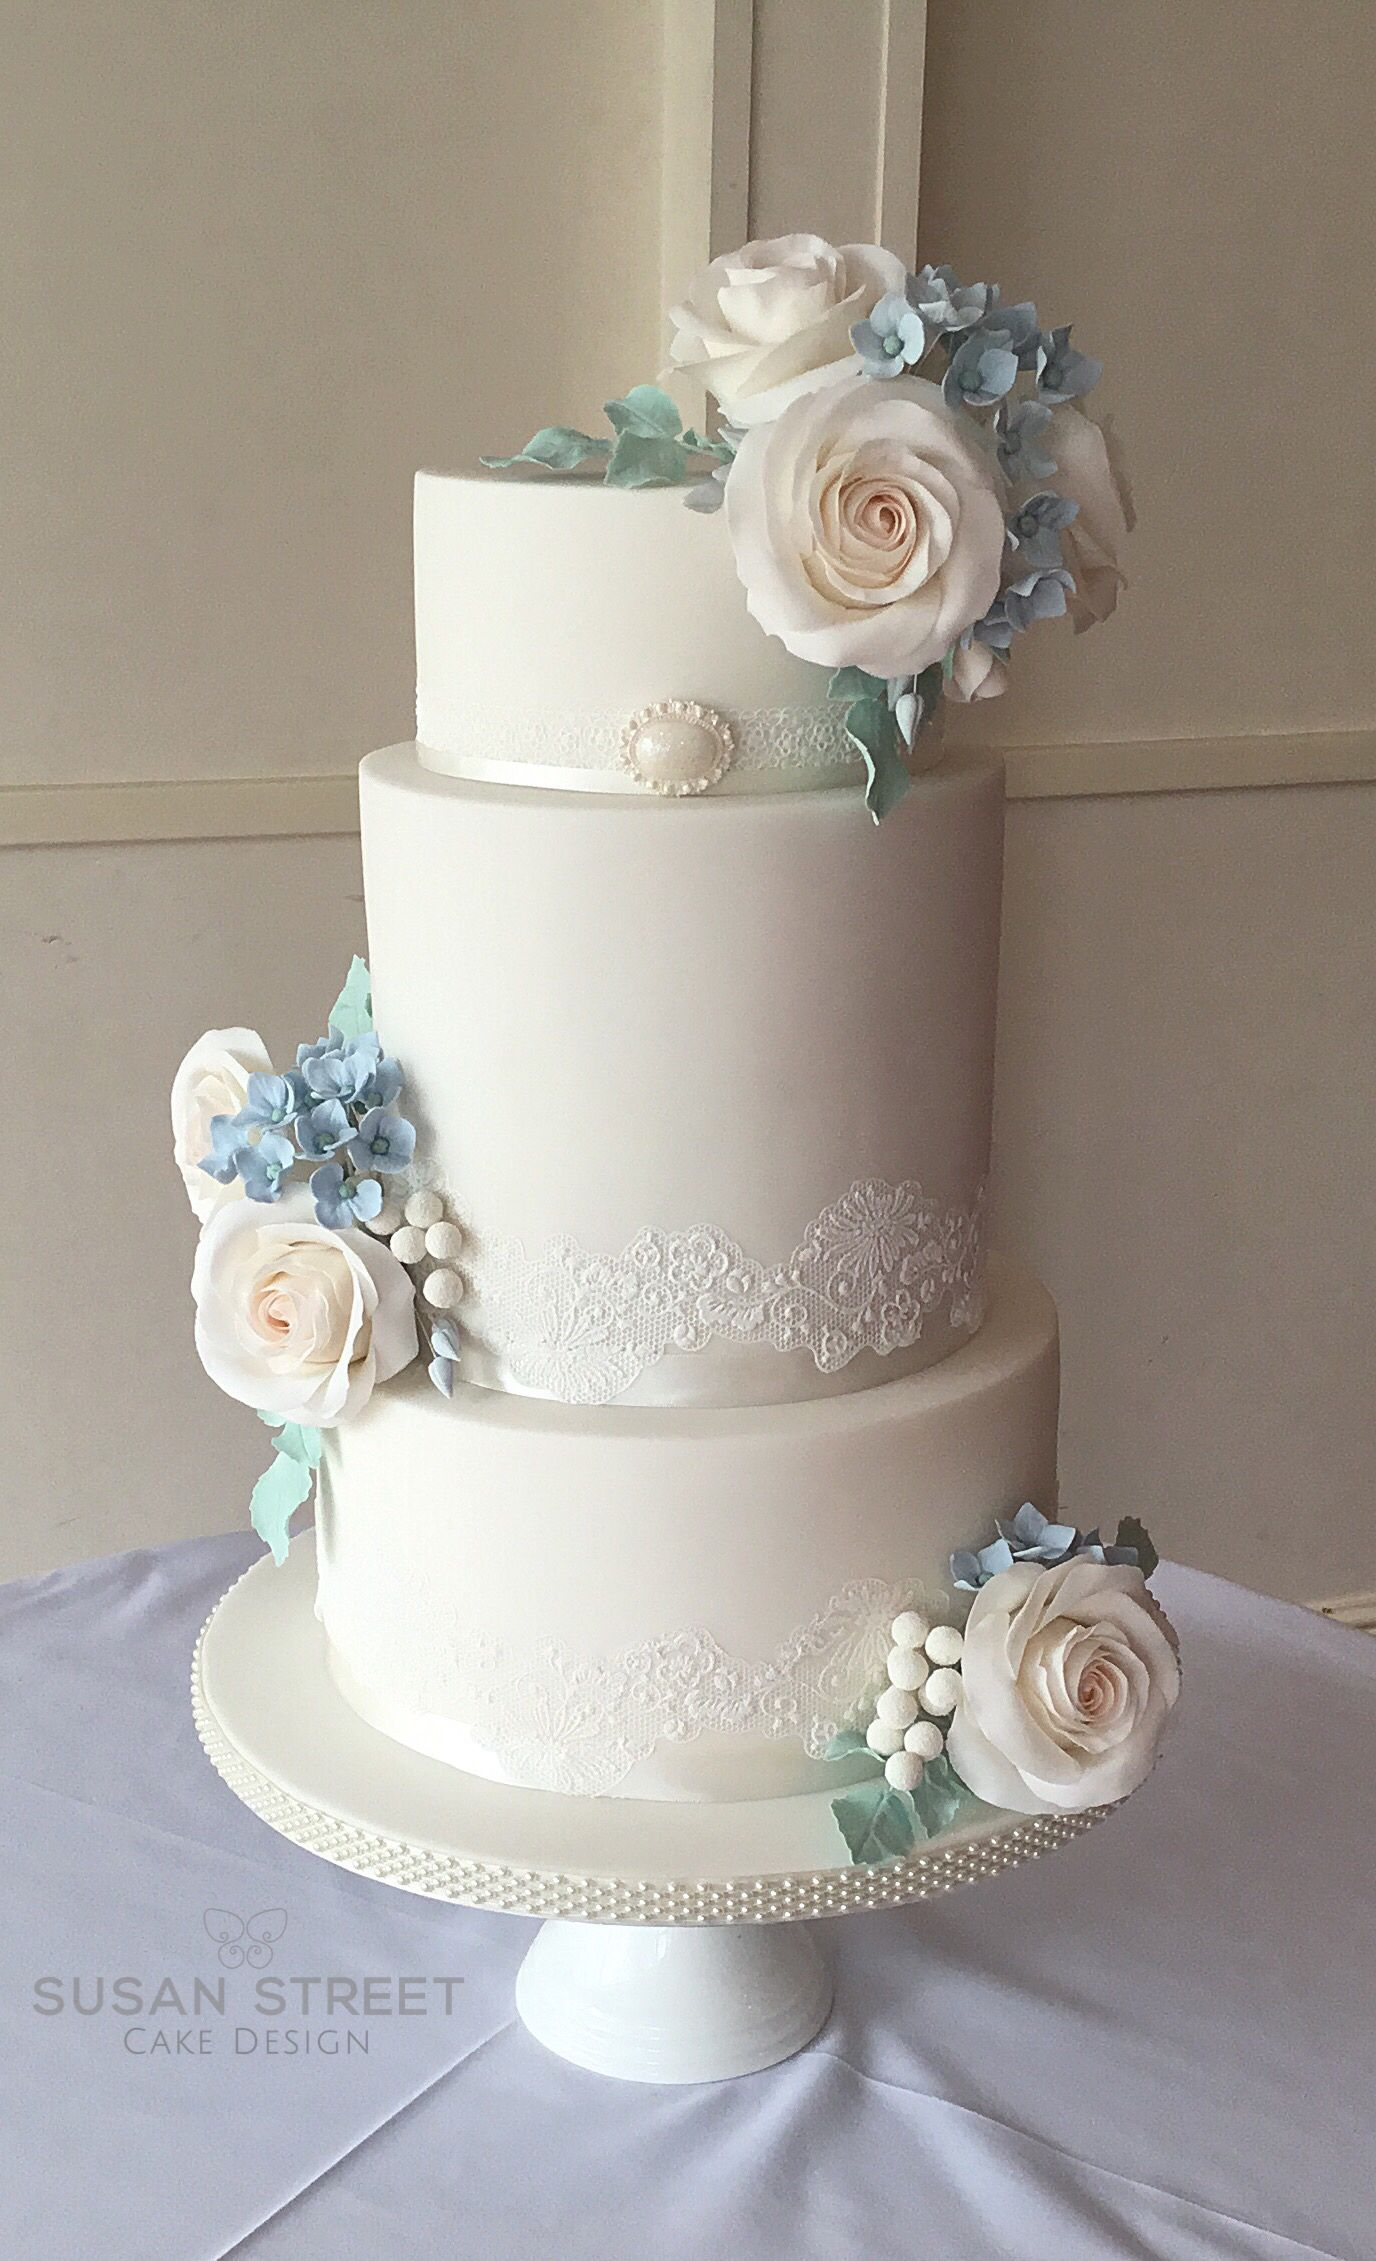 Three Tier Ivory Wedding Cake With Handmade Sugar Roses And Pale